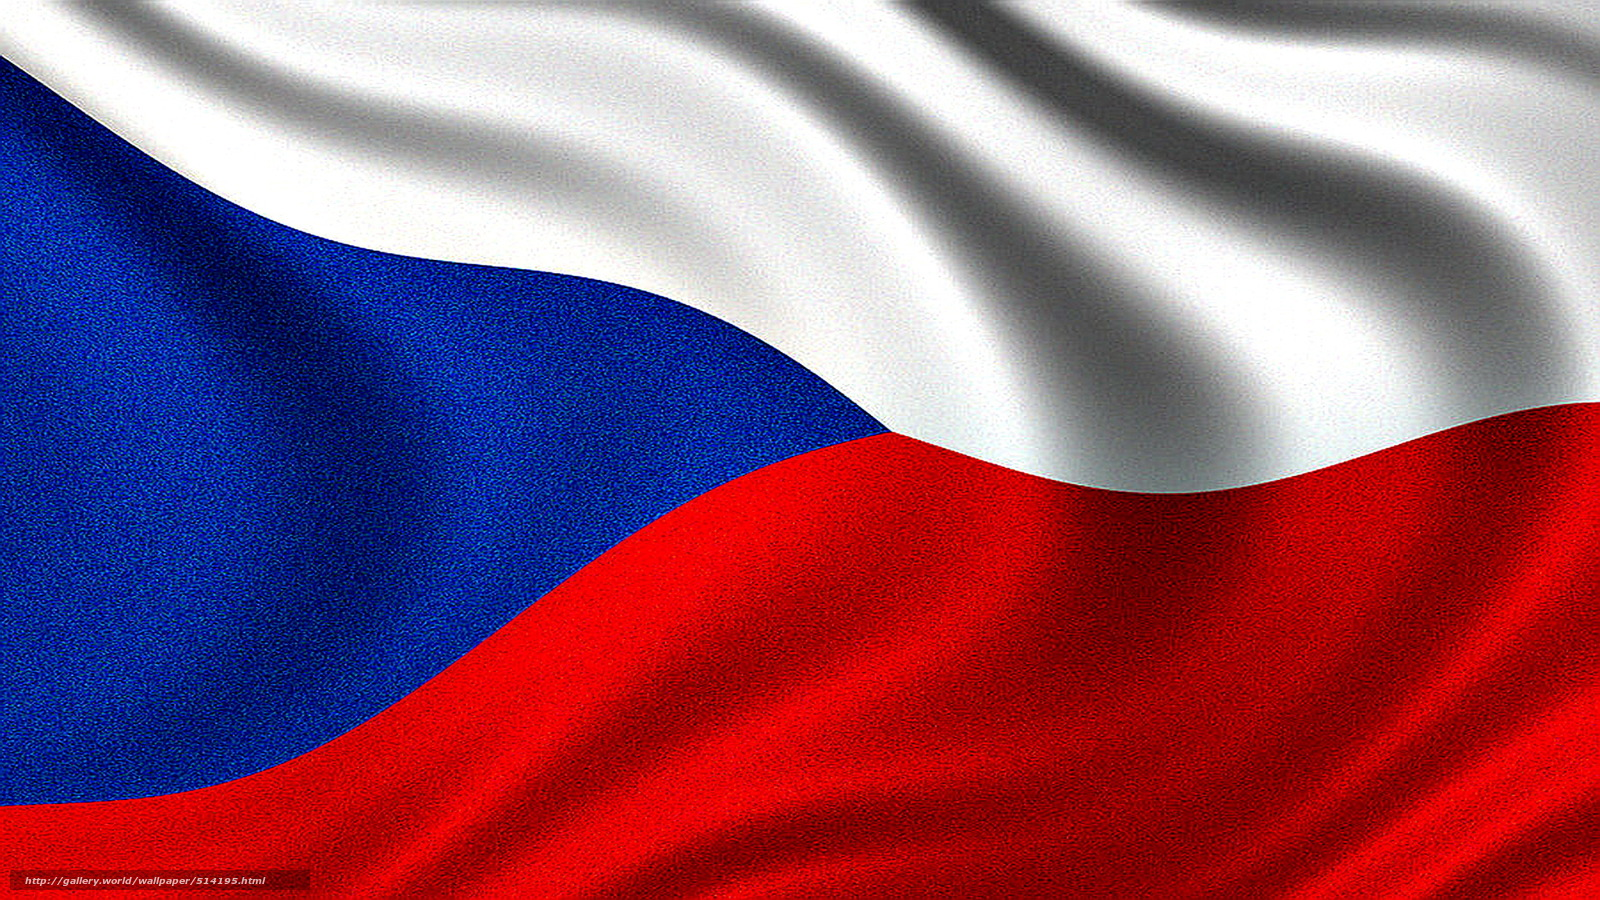 Download wallpaper Flag of the Czech Republic Czech Czech 1600x900